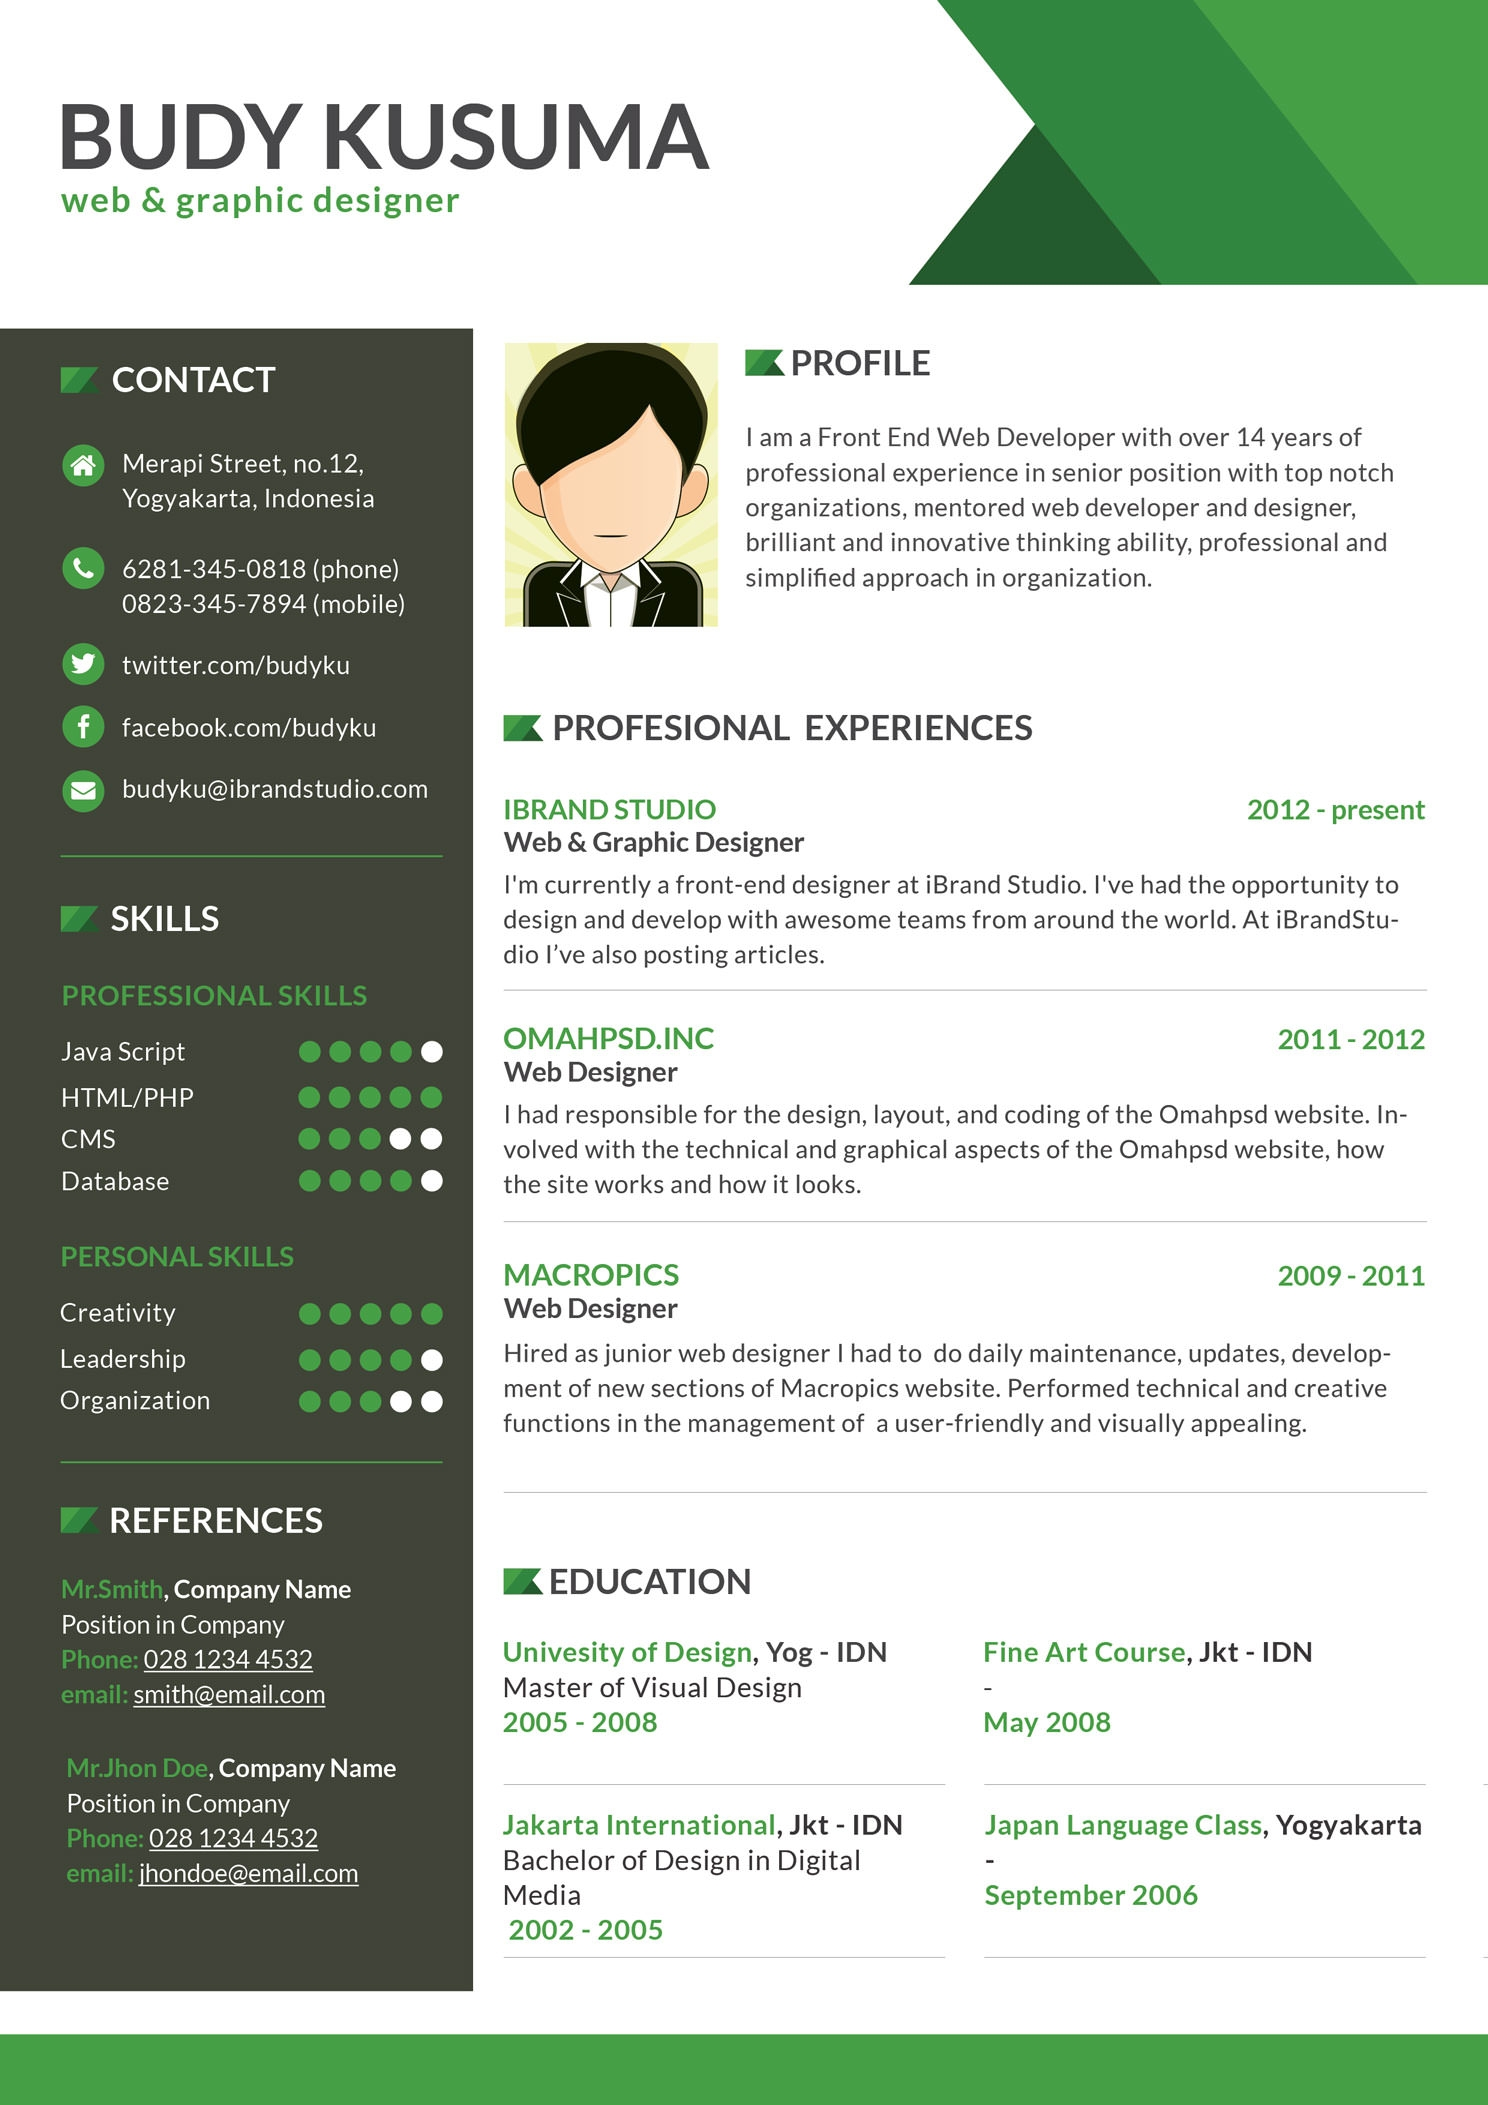 resume template designs creatives flasher resume template green button 171211112111121